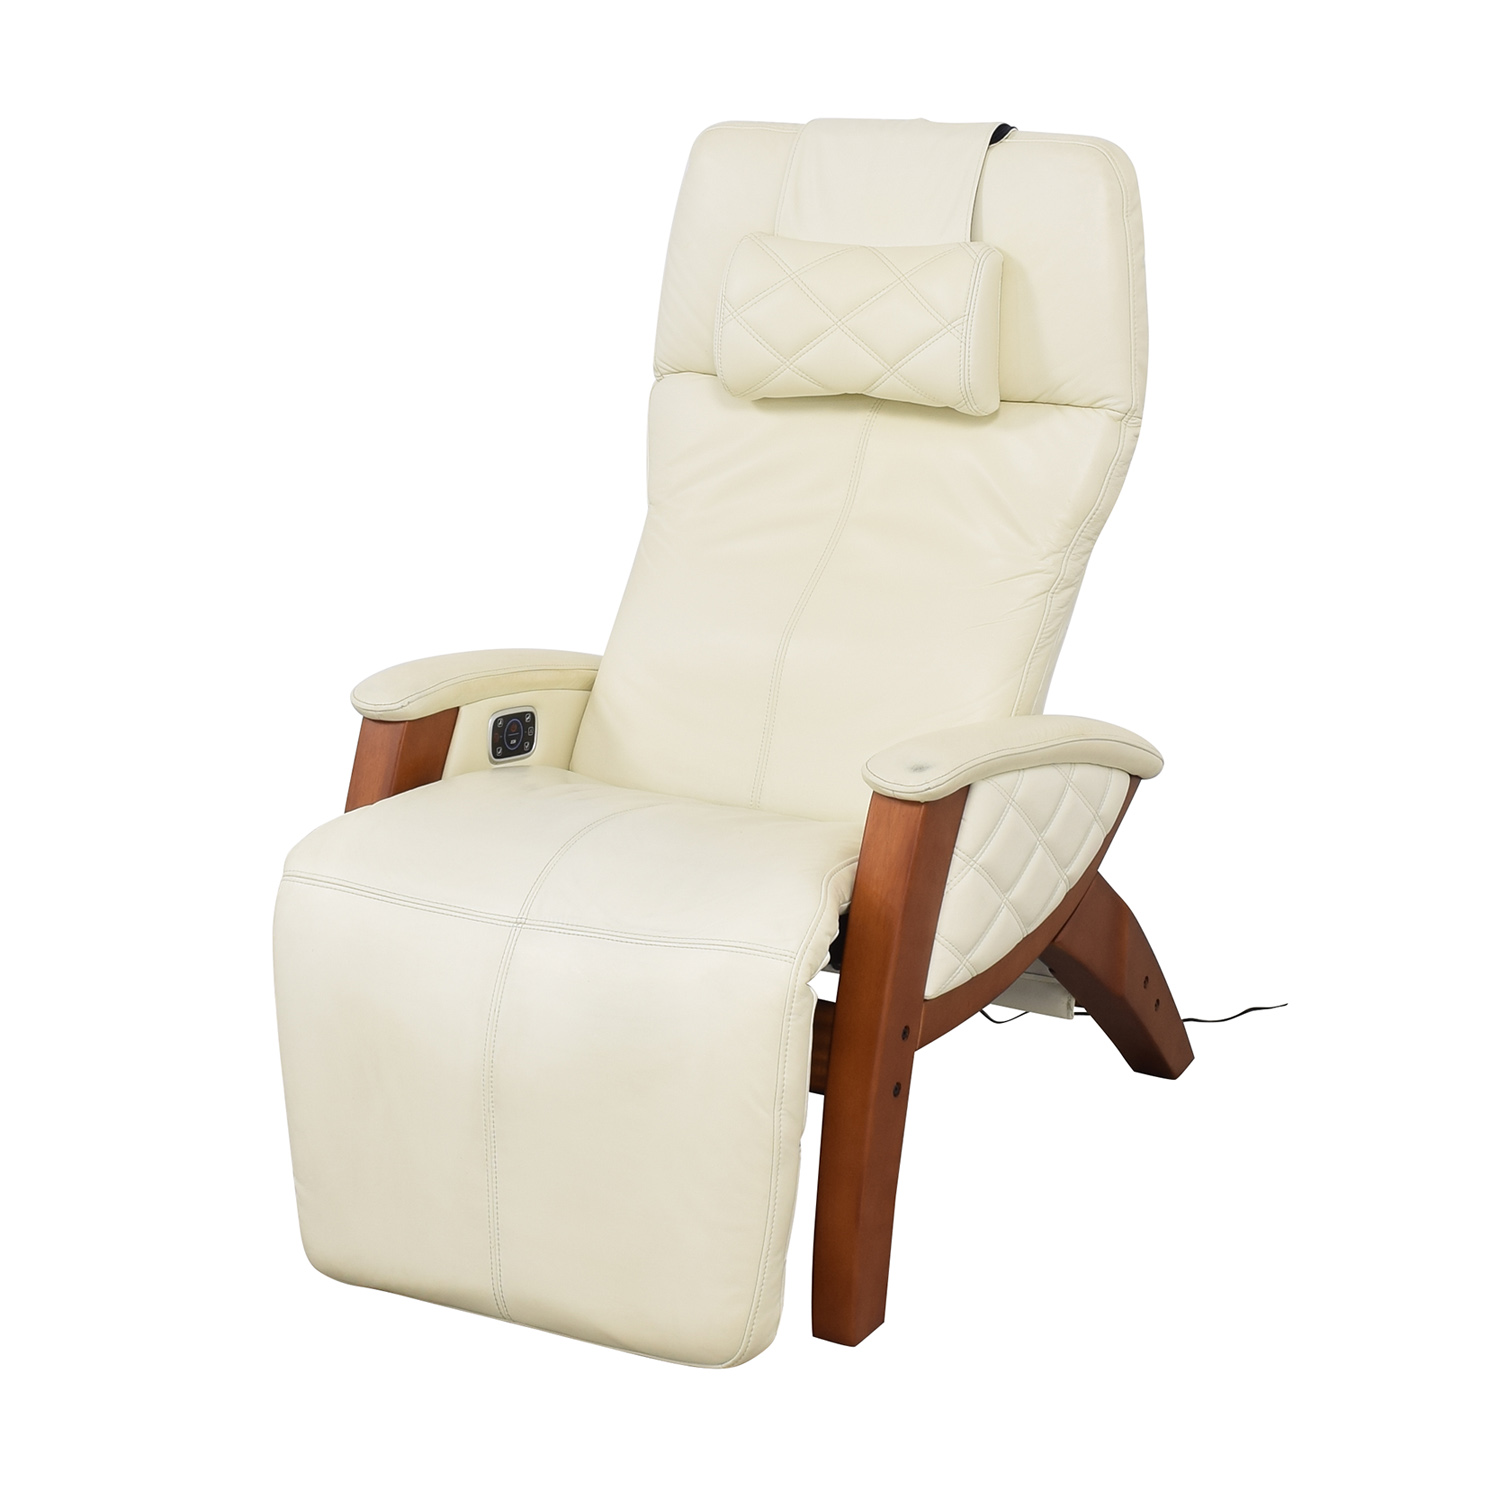 buy Relax The Back Electro Lounge Chair Relax The Back Recliners